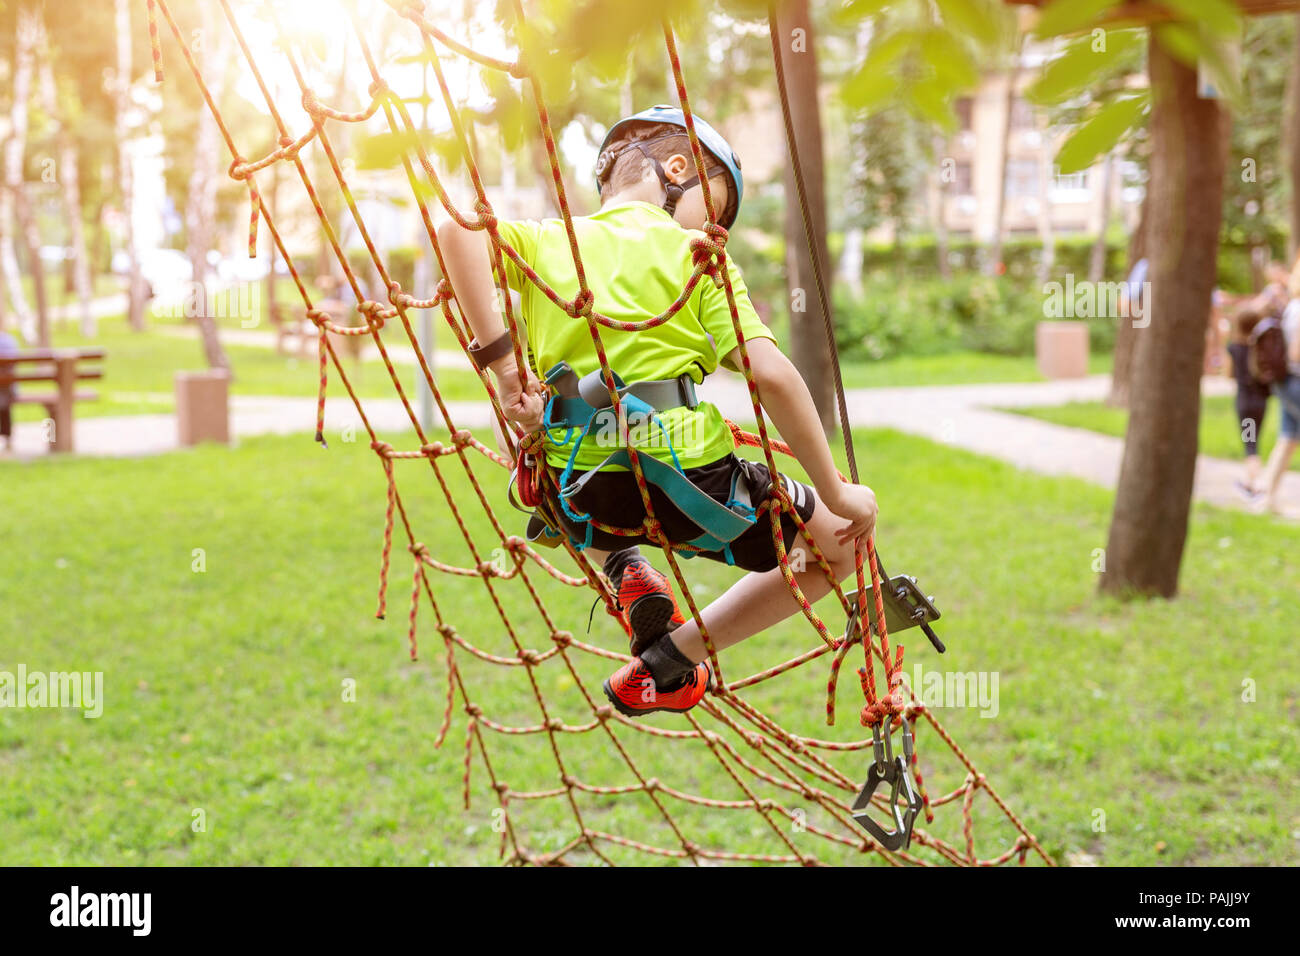 Little boy in safety equipment climbing on rope wall at adventure park. Children summer sport extreme outdoor activity. Back view. - Stock Image